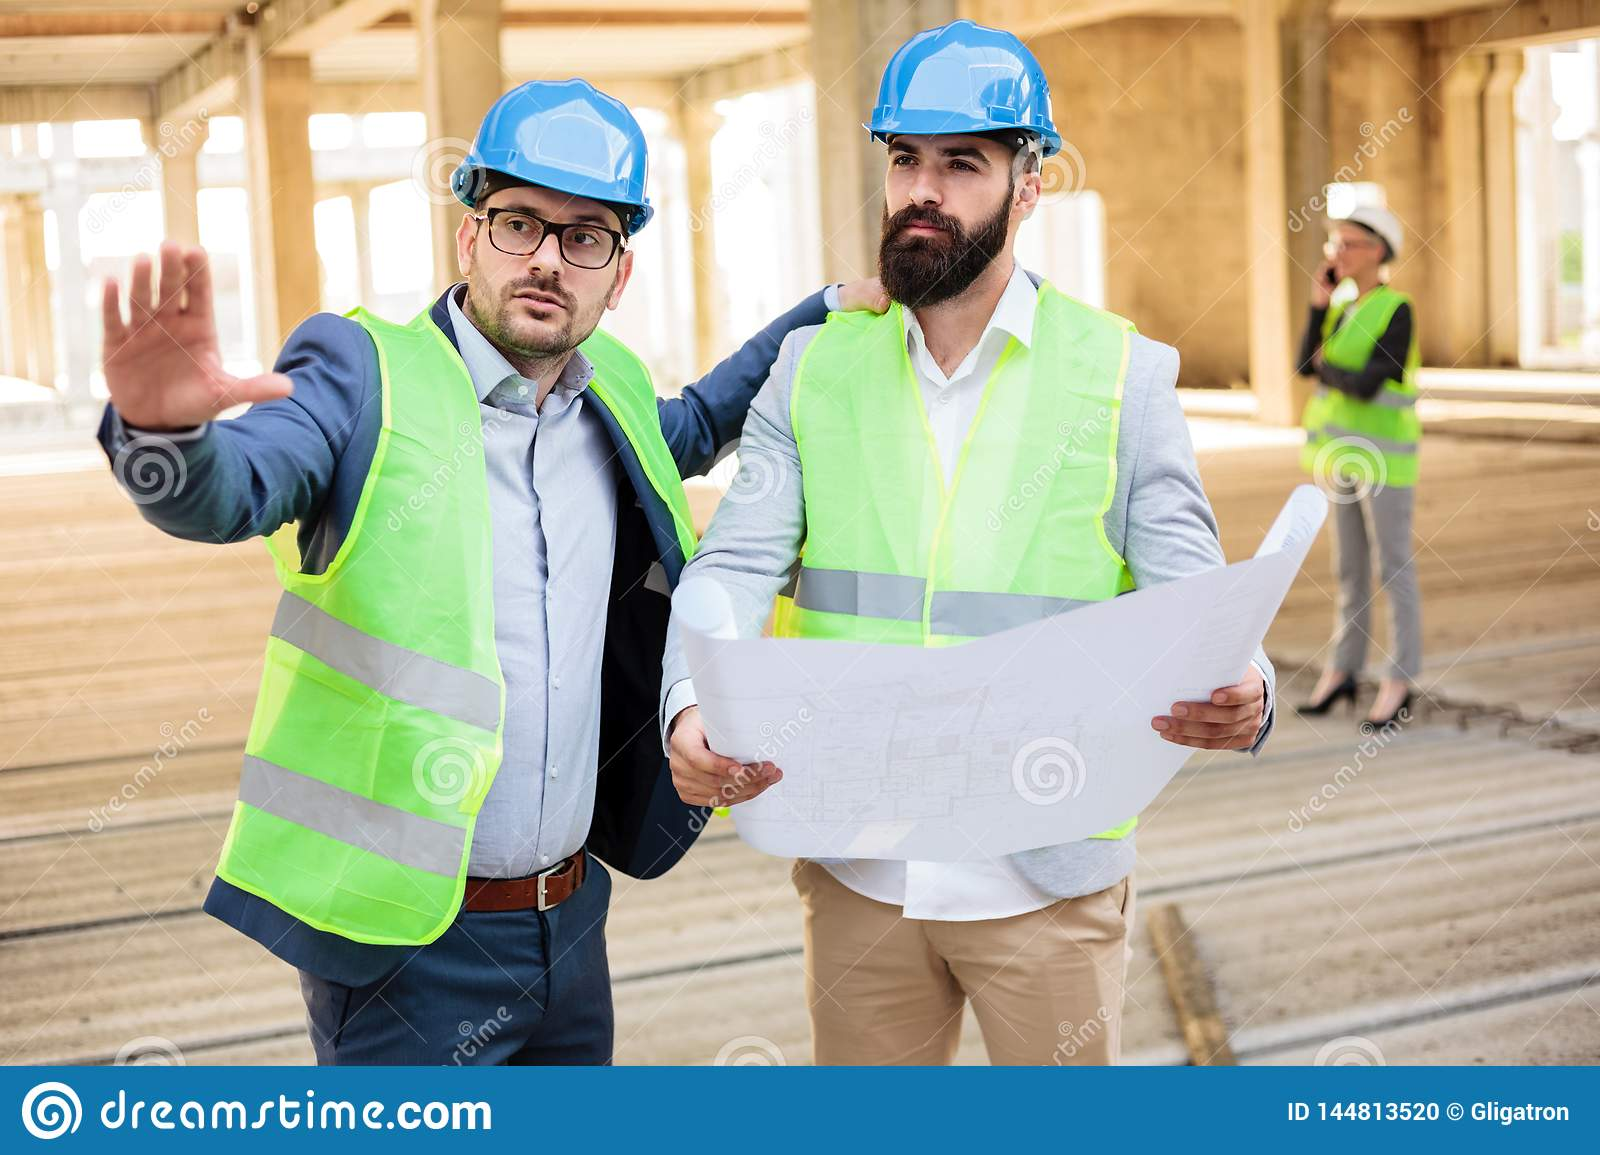 Two young male engineers discussing project details on a construction site